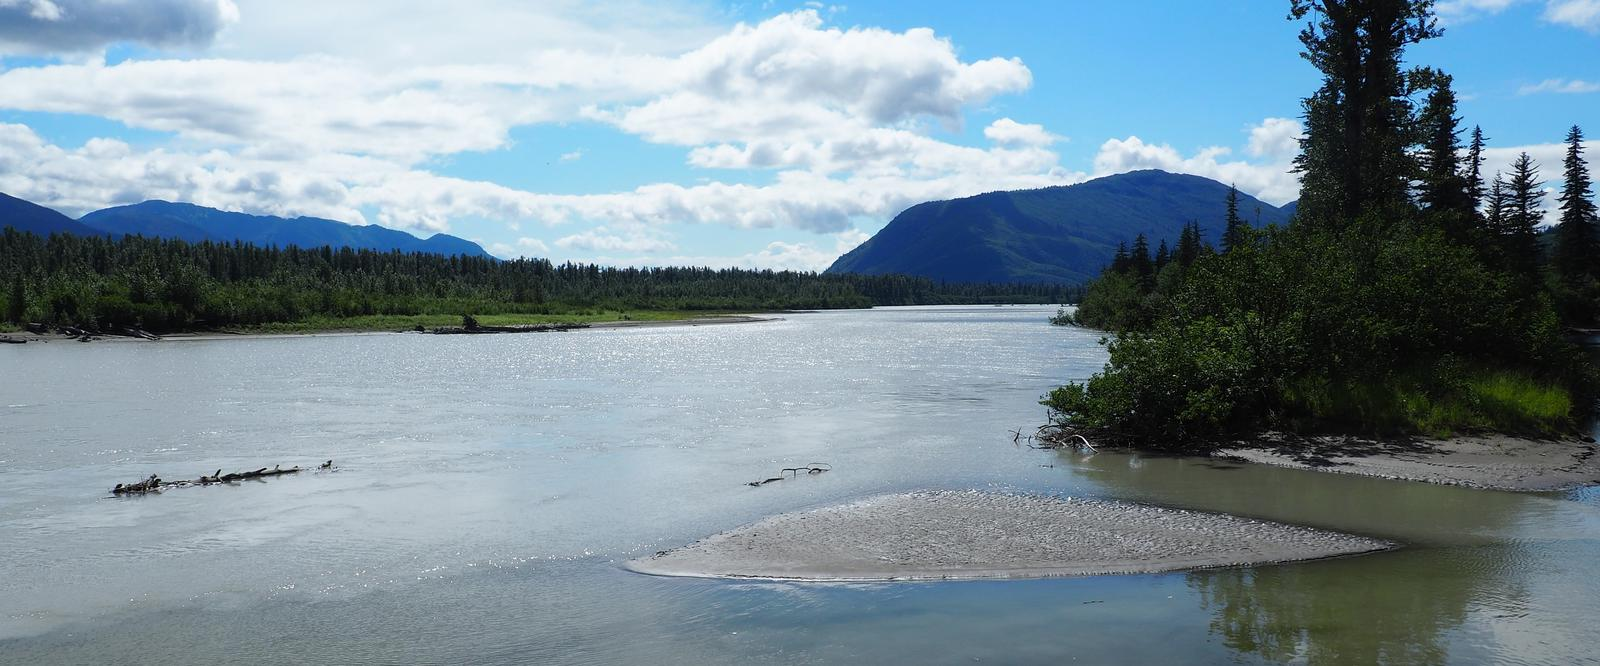 View of Stikine River from Twin Lakes Cabin